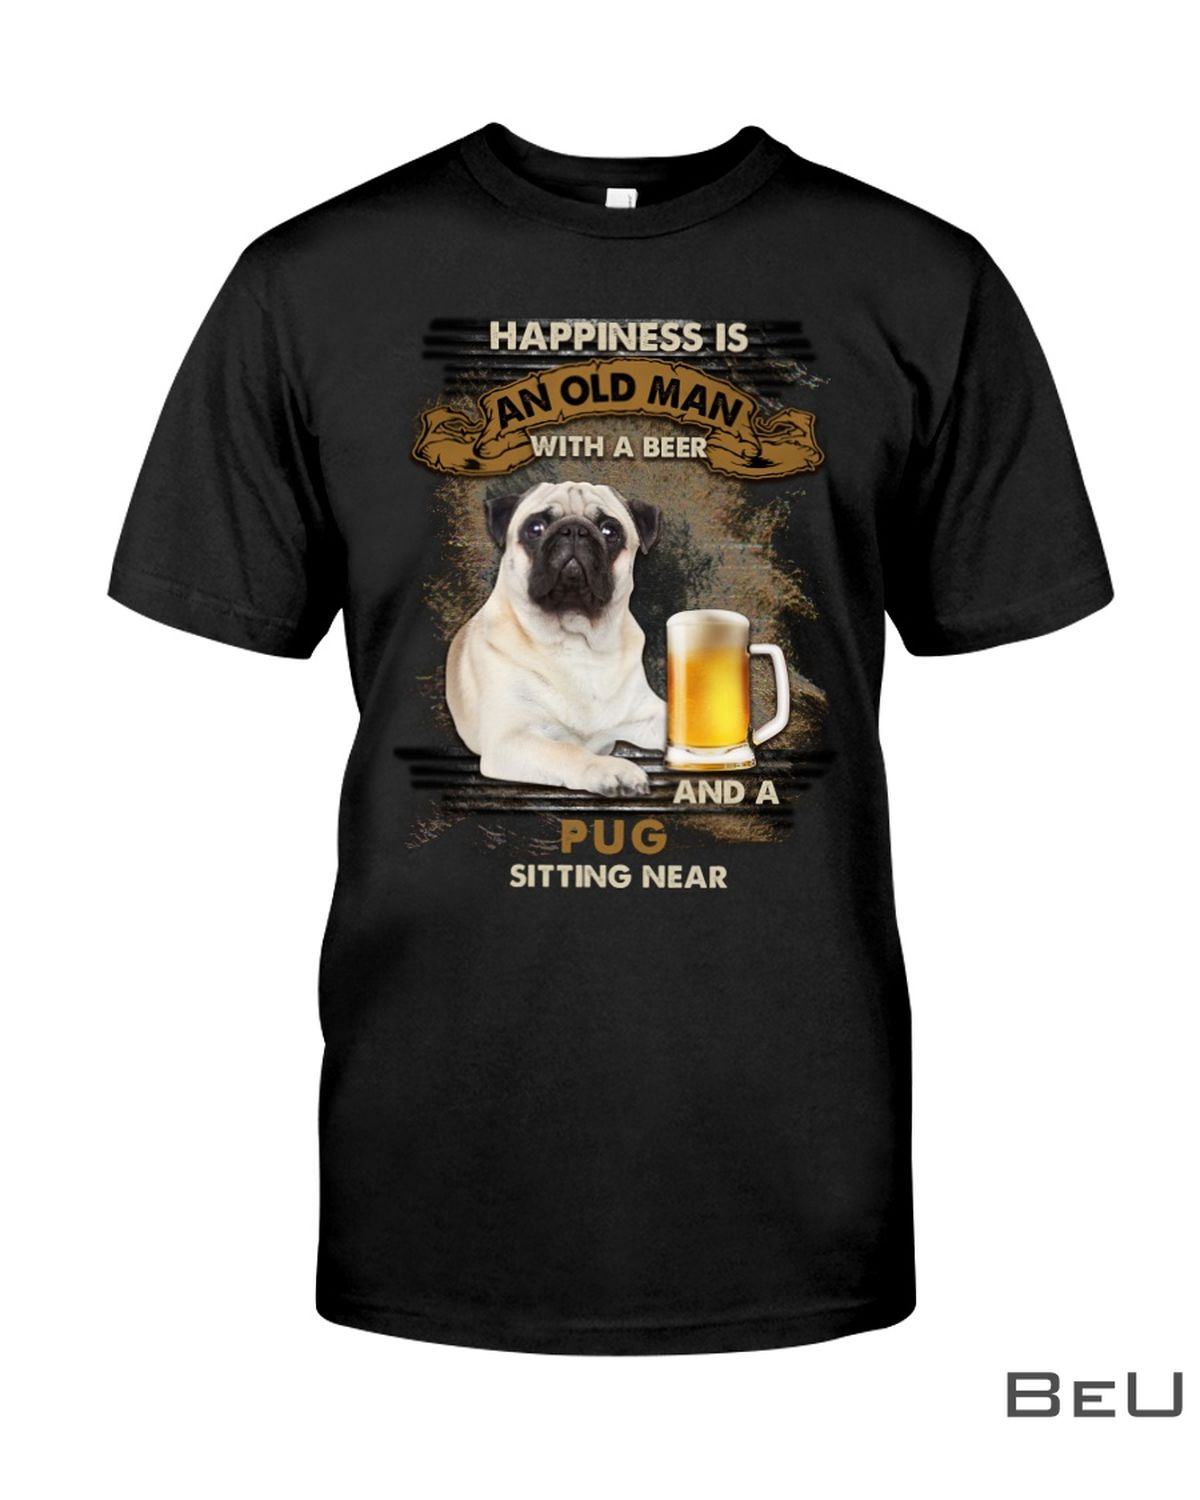 Pug Happiness Is An Old Man With A Beer And A Pug Sitting Near Shirt, hoodie, tank top